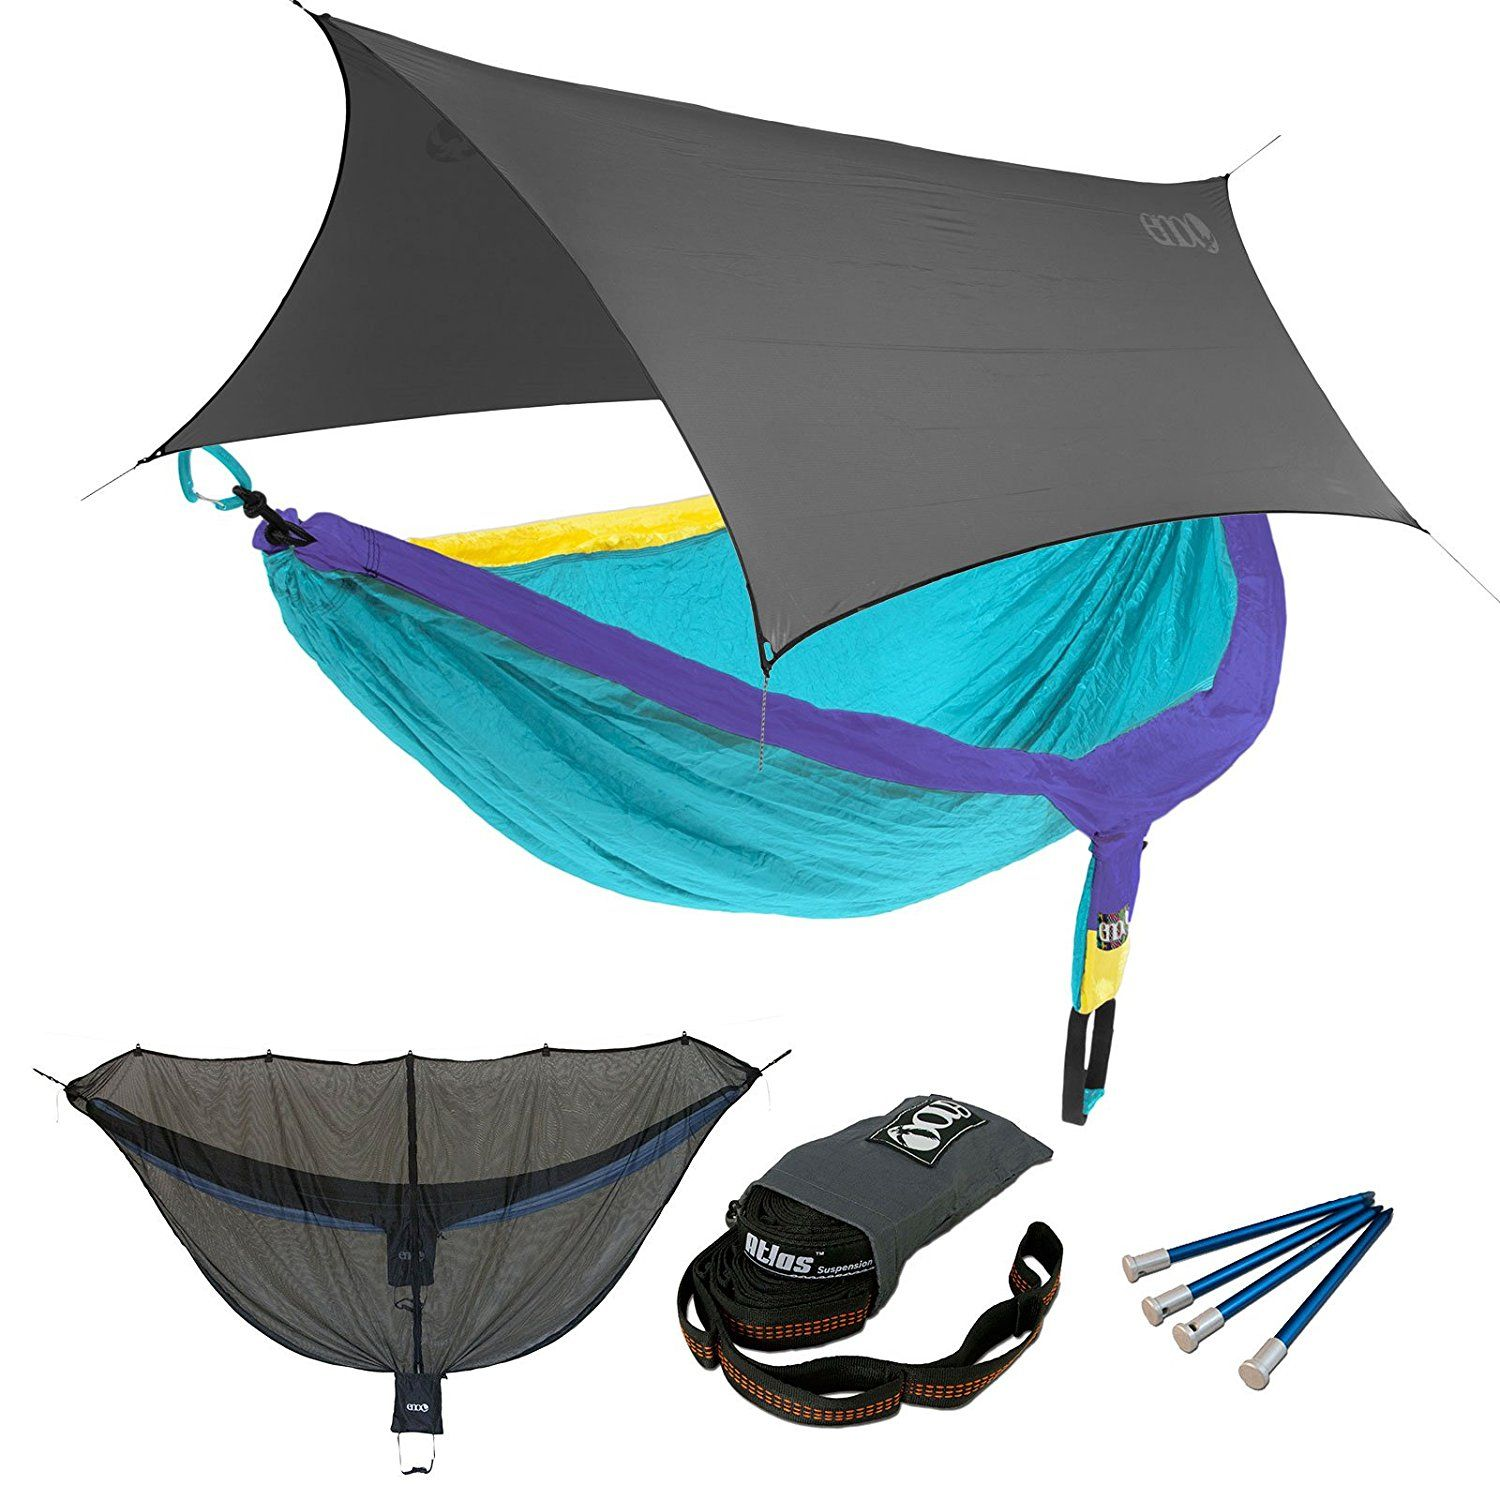 straps doublenest itm slap eno teal camping backpacking with purple hammock k